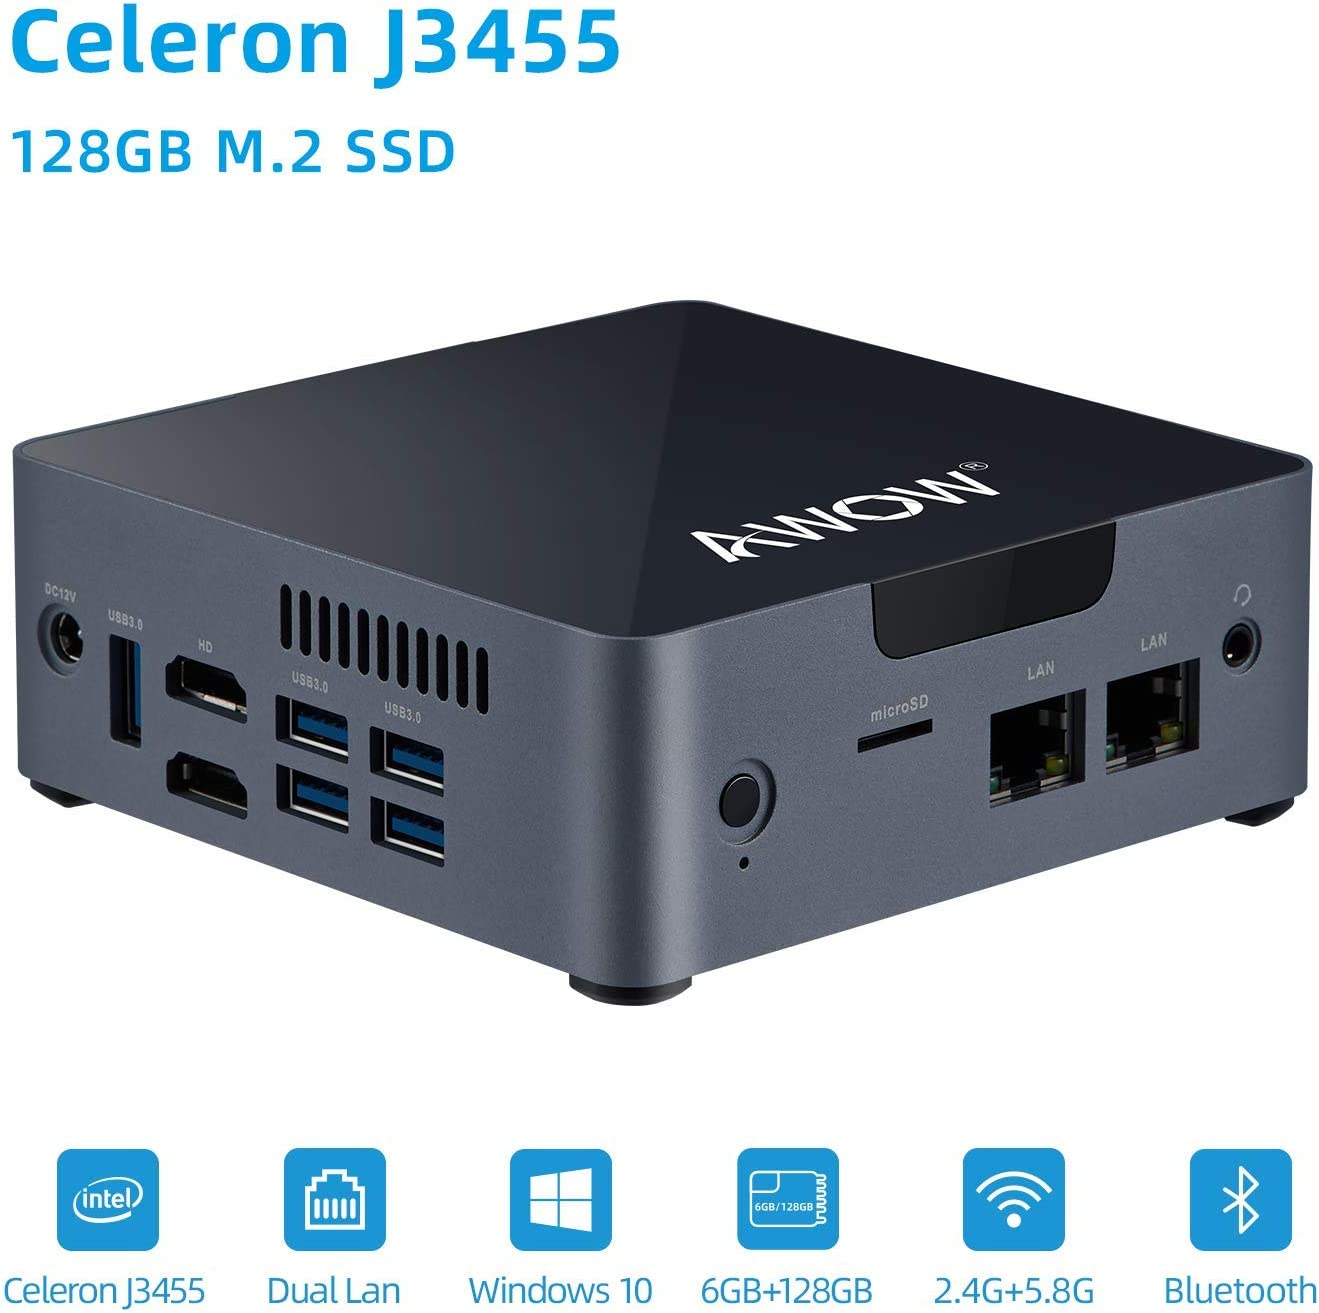 Mini PC Intel Celeron J3455 6GB DDR4, 128 GB SATA SSD, Mini Desktop Computer, AWOW AK34 Micro PC, Windows 10, Quad Core, Dual Gigabit Ethernet NIC, Dual HDMI, 5X USB3.0, 4K UHD, Bluetooth